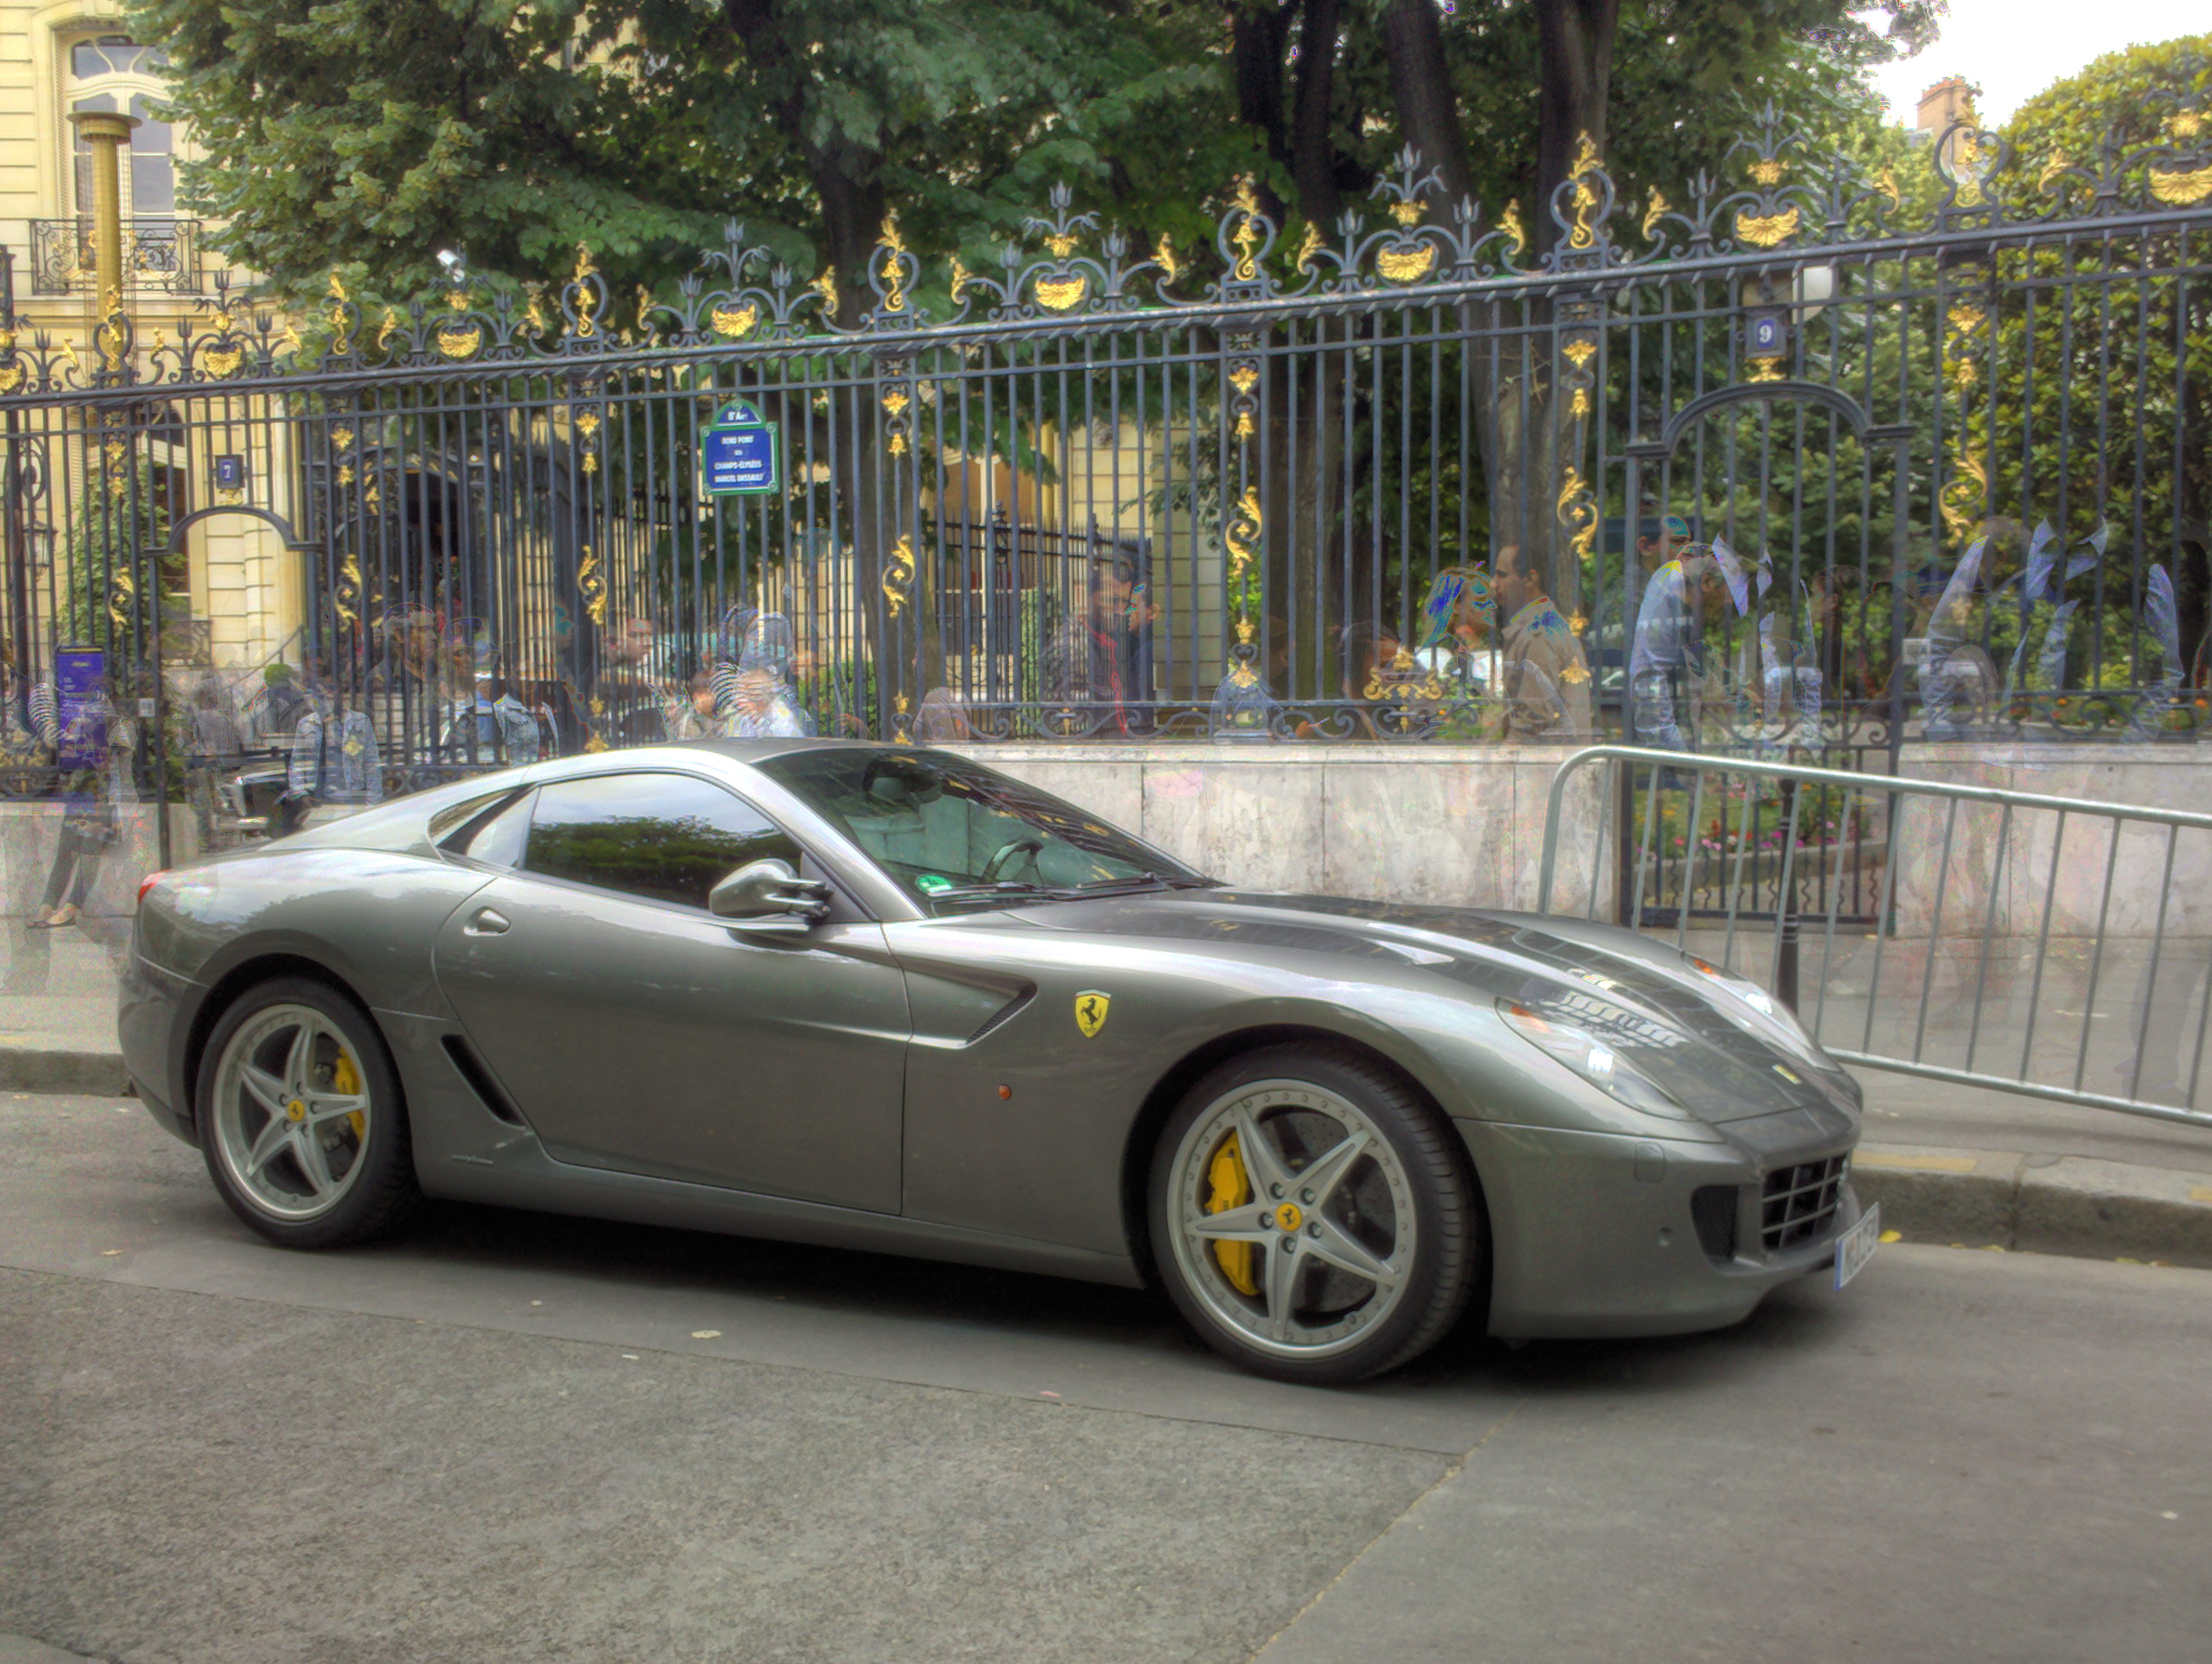 gtb luxury sale hgte new fiorano gve for edit ferrari london vehicles